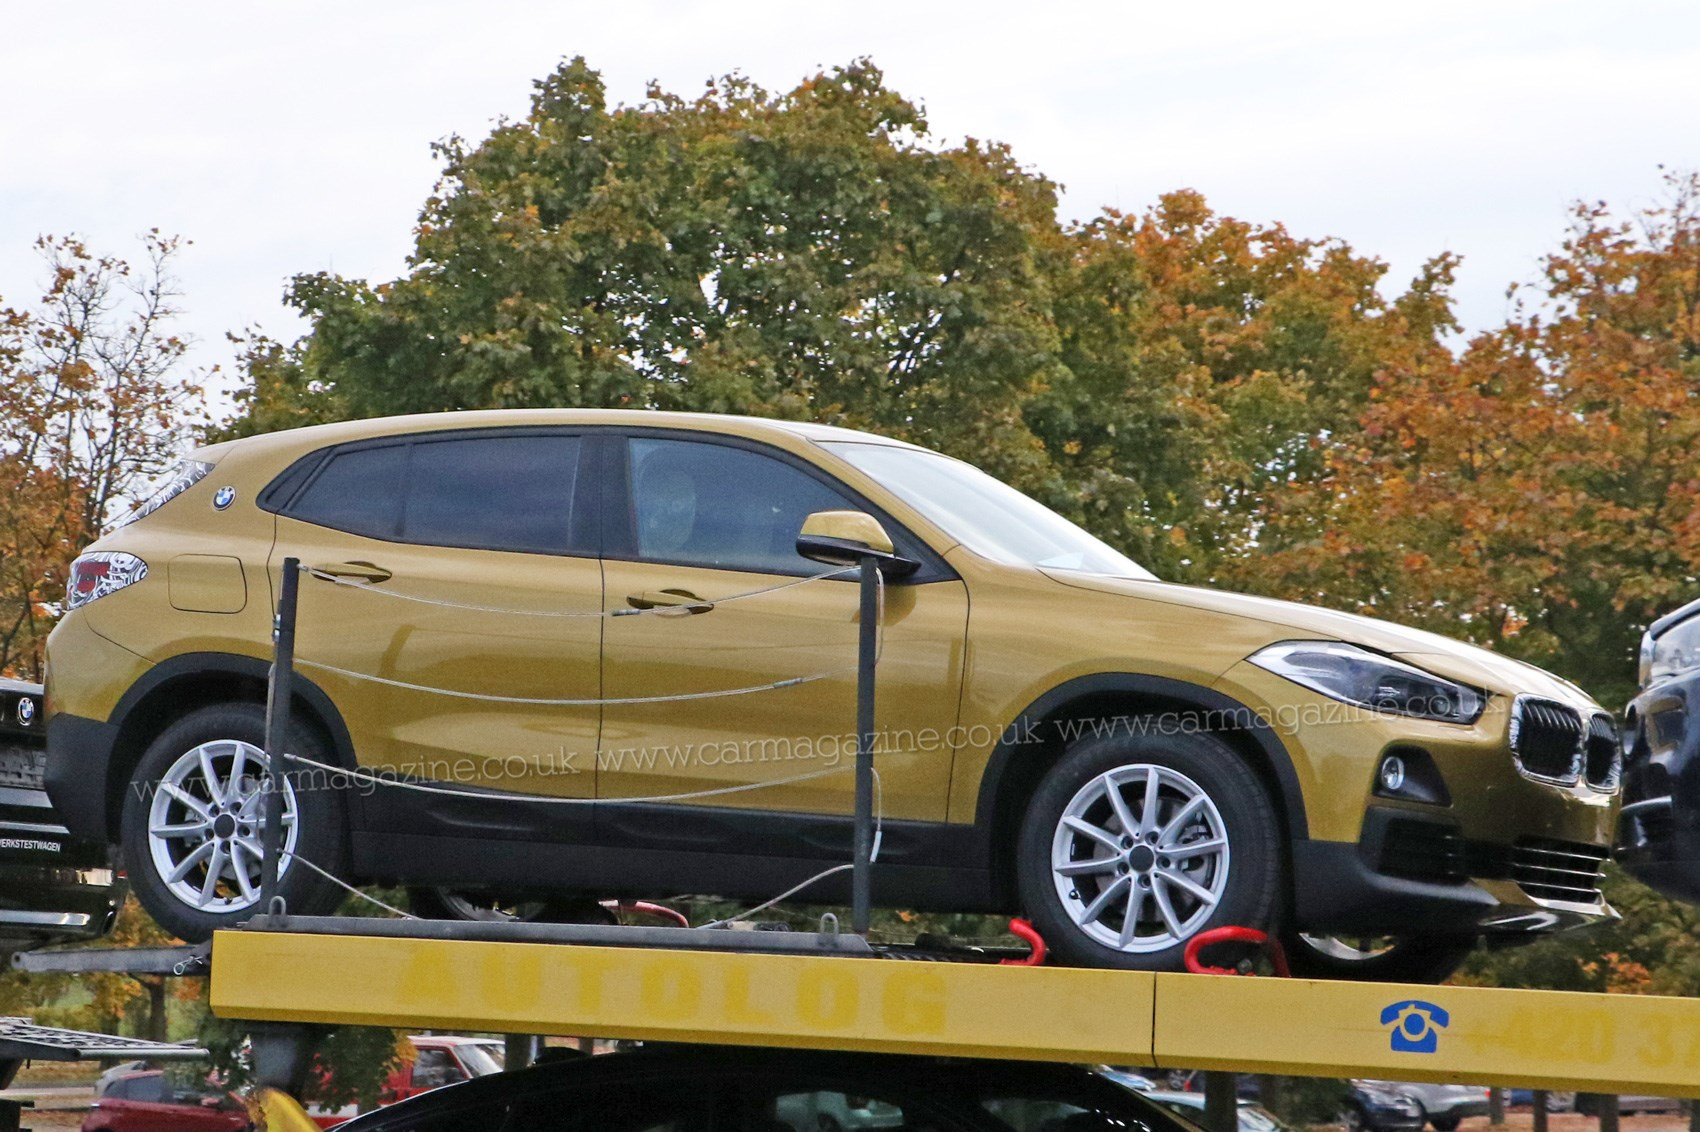 This Is Our Best Look Yet At The New Bmw X2 Suv By Car Magazine